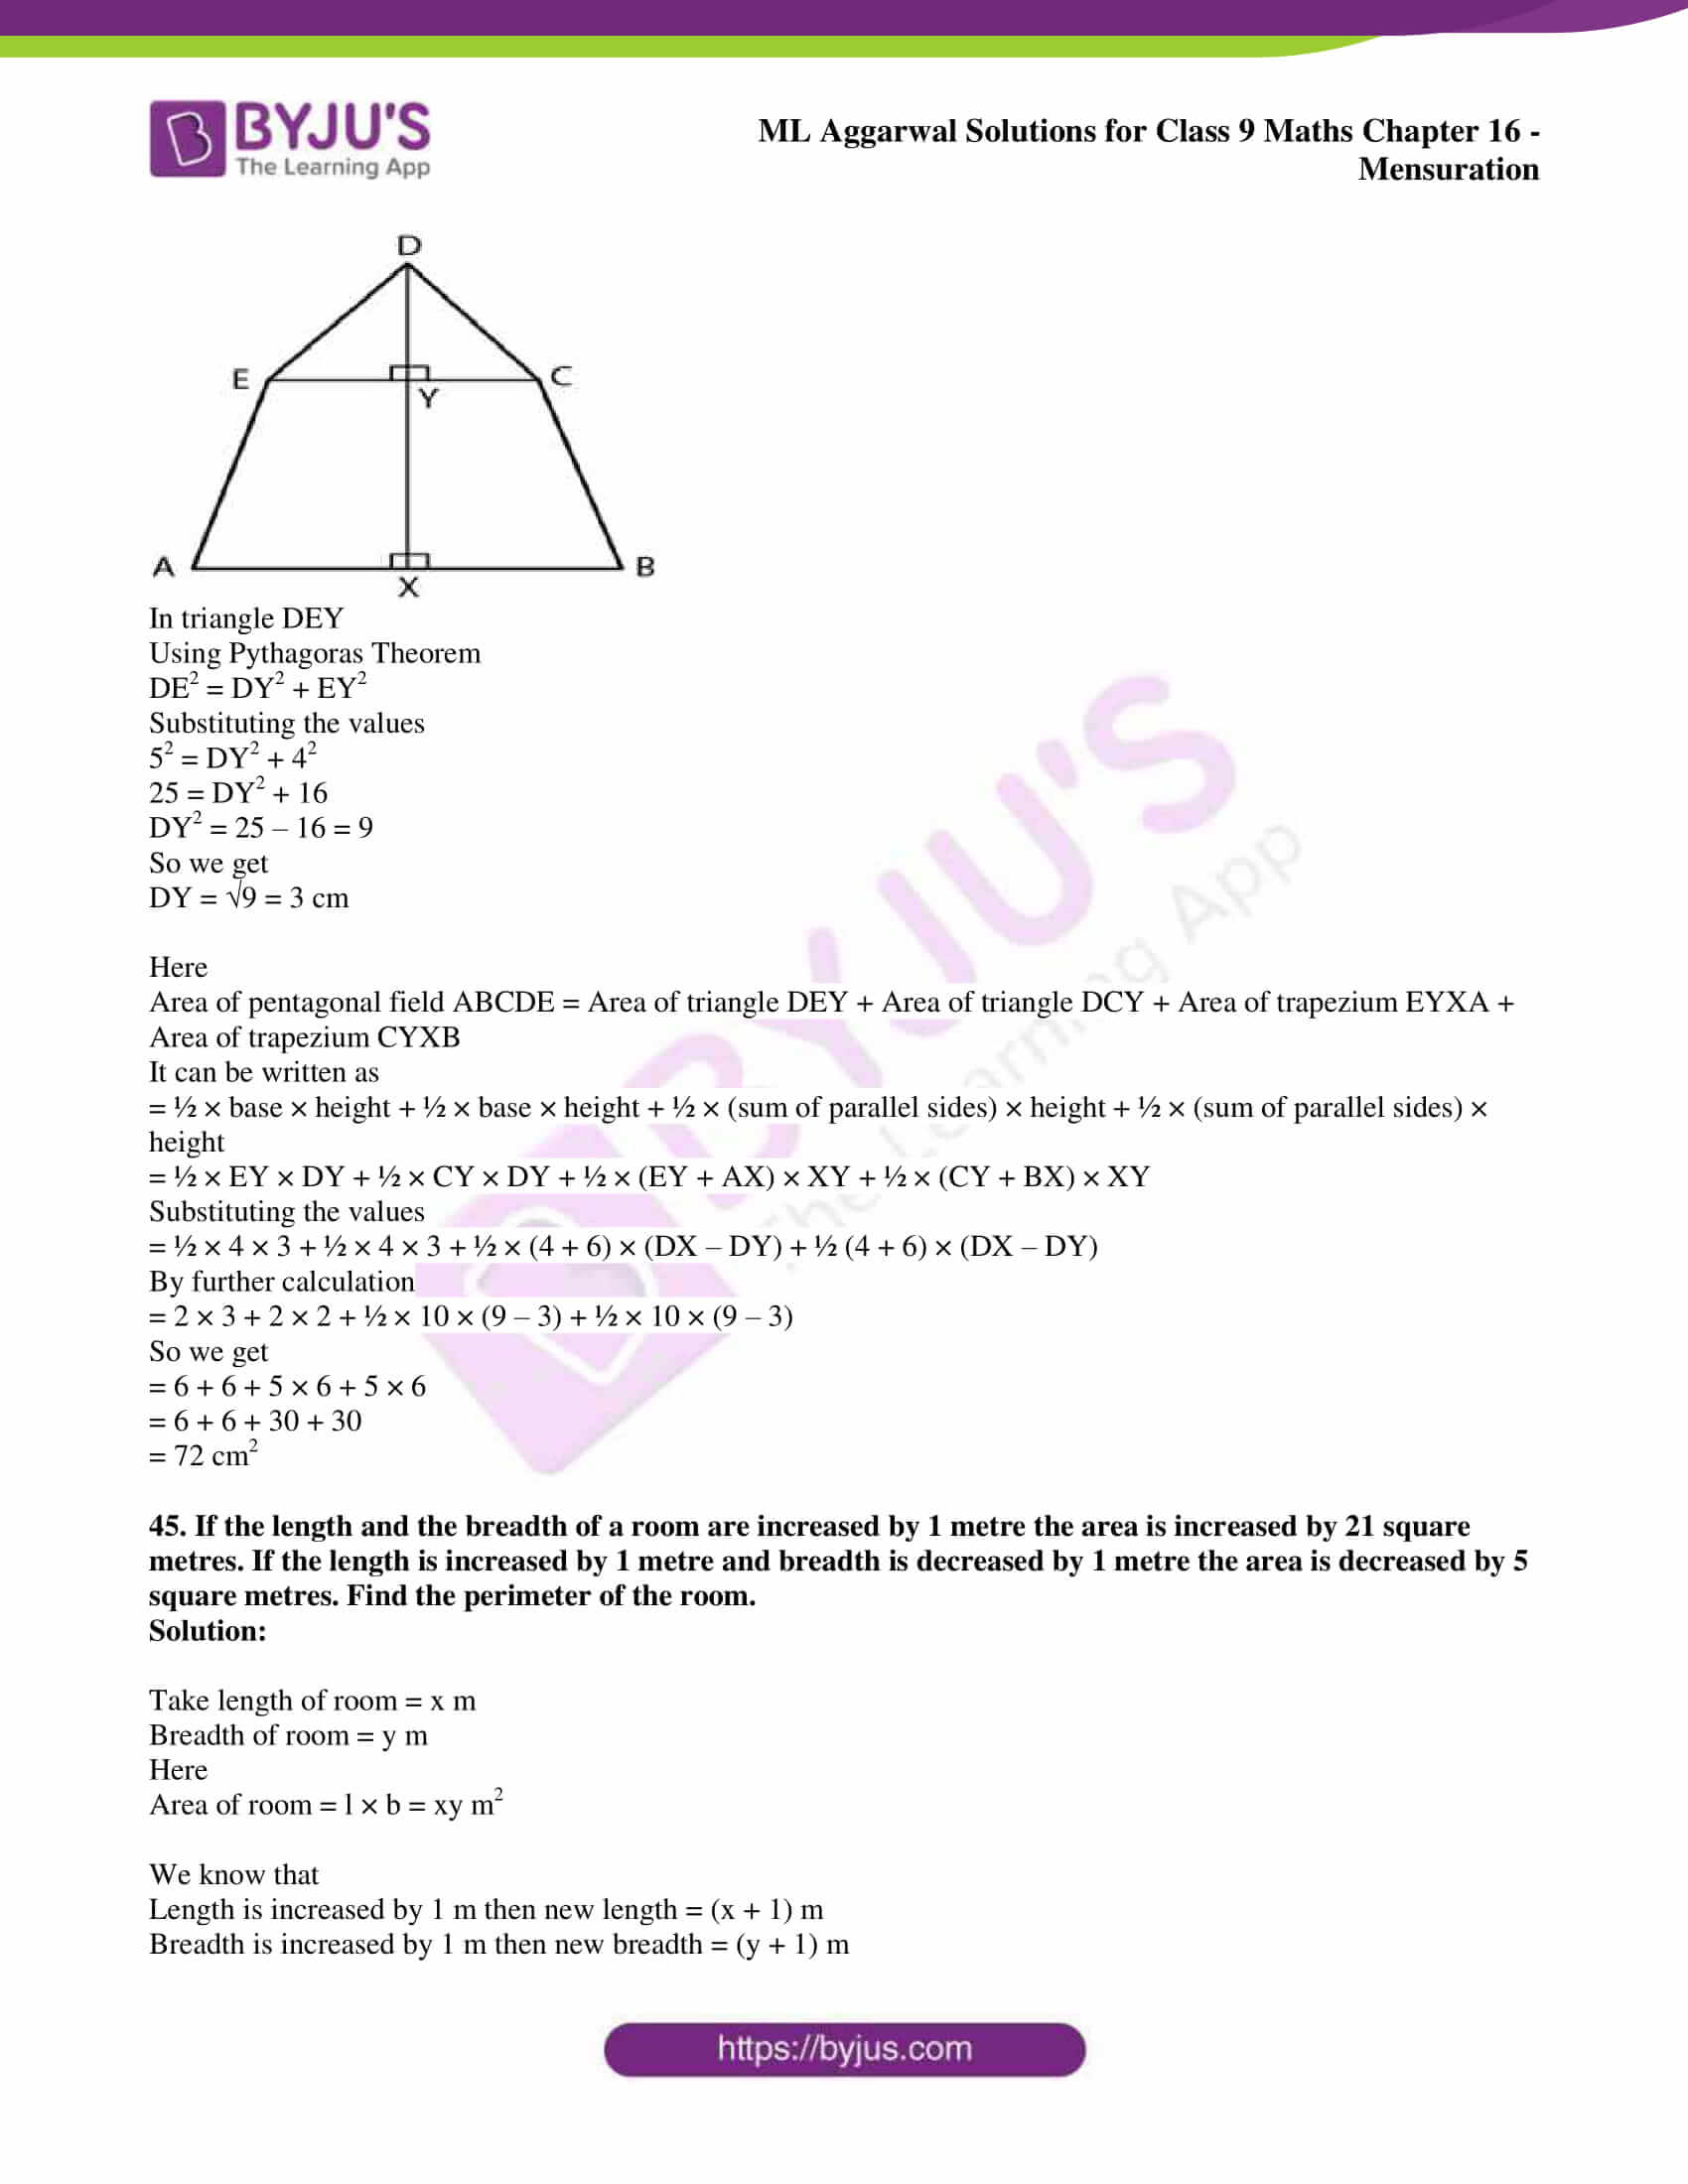 ml aggarwal solutions for class 9 maths chapter 16 069